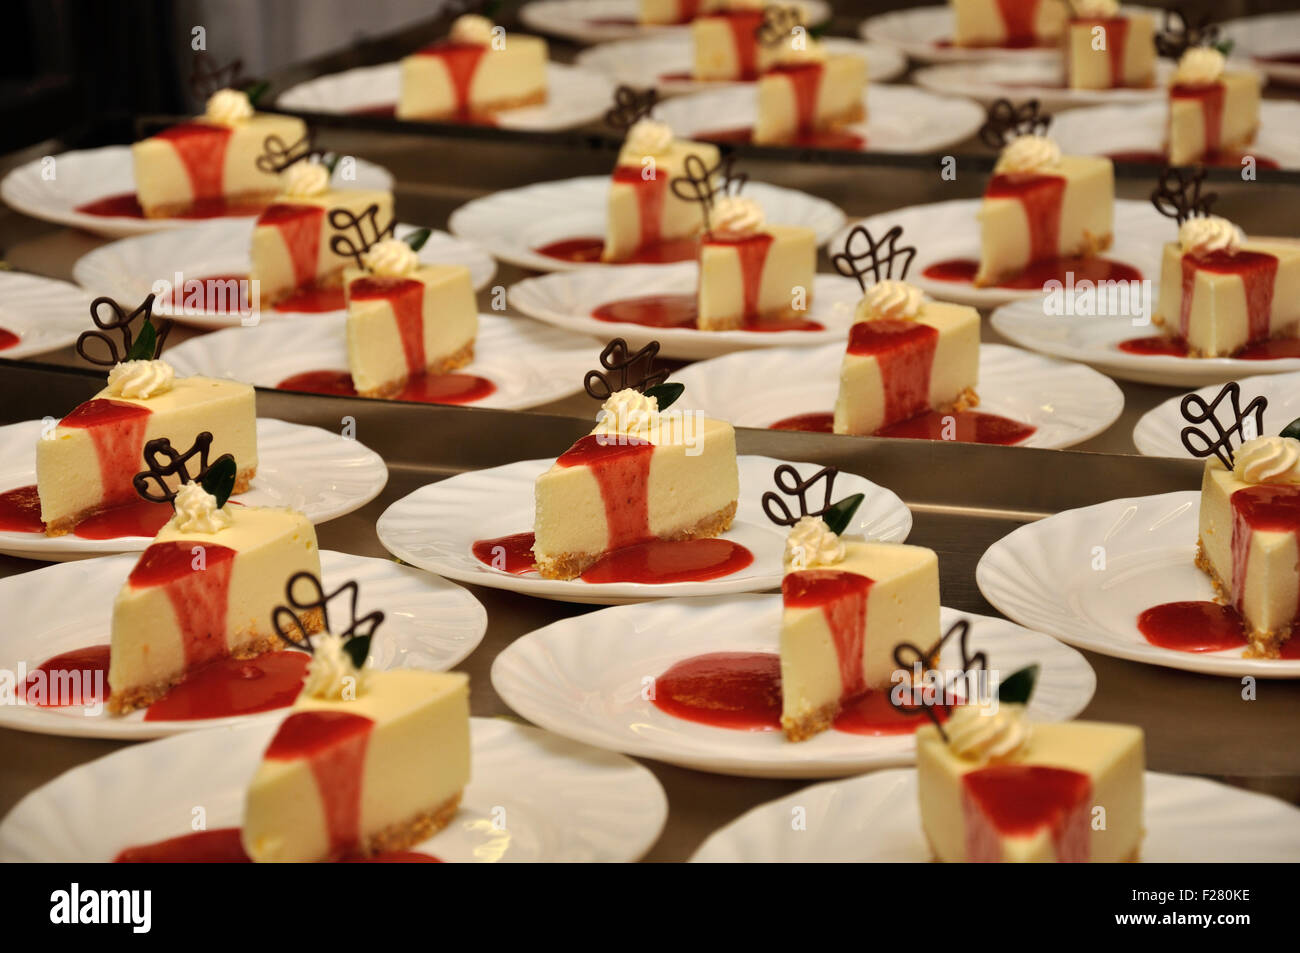 Plates of cheesecake ready to serve at a reception - Stock Image